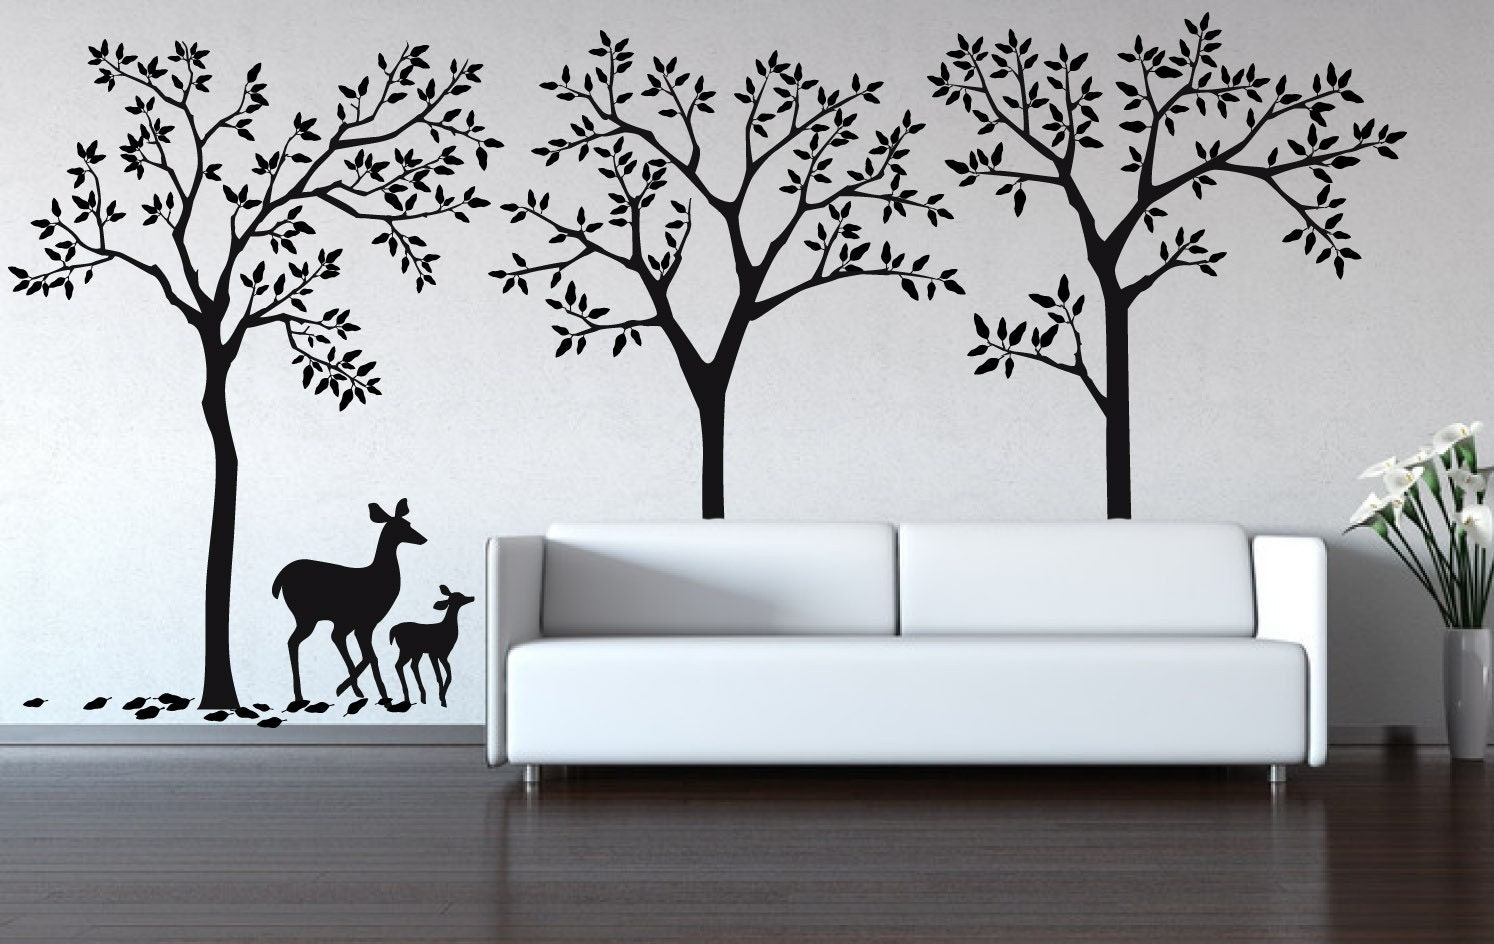 Wall Decal Urban Forest Decal Removable Matte Wall Stickers